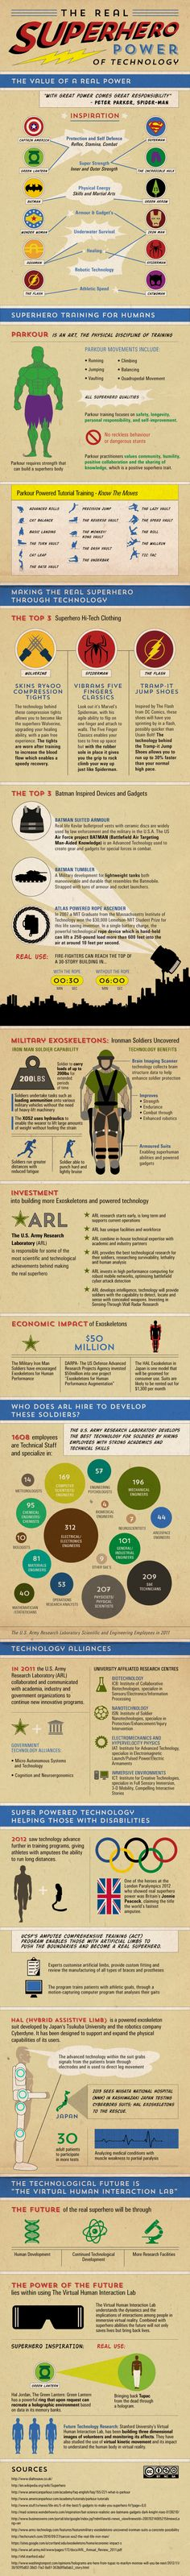 Reviewing the Real Superhero Power of Technology {funny transhumanist infographic}